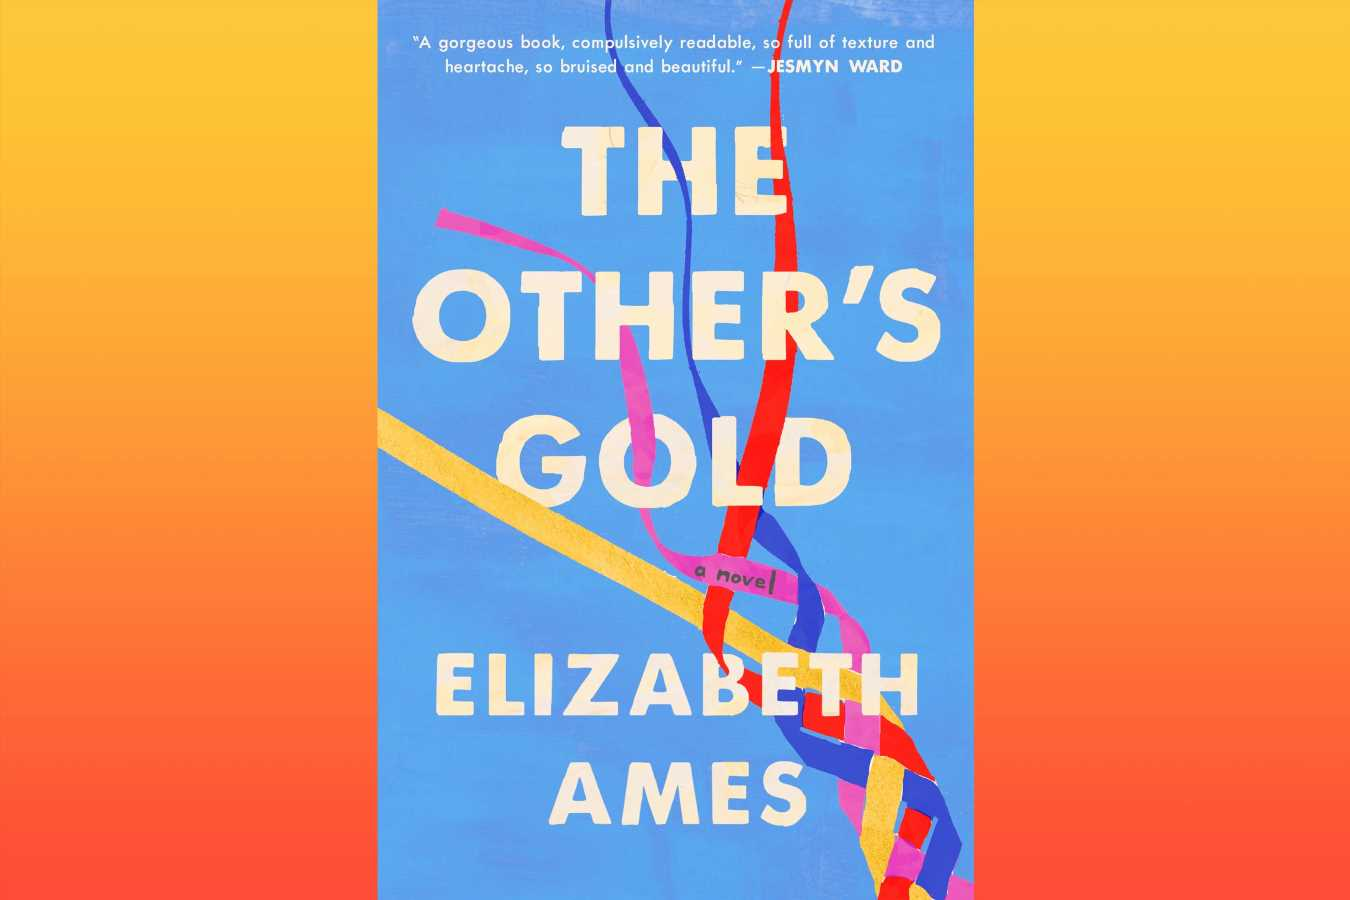 Elizabeth Ames on The Other's Gold, a hot new debut novel